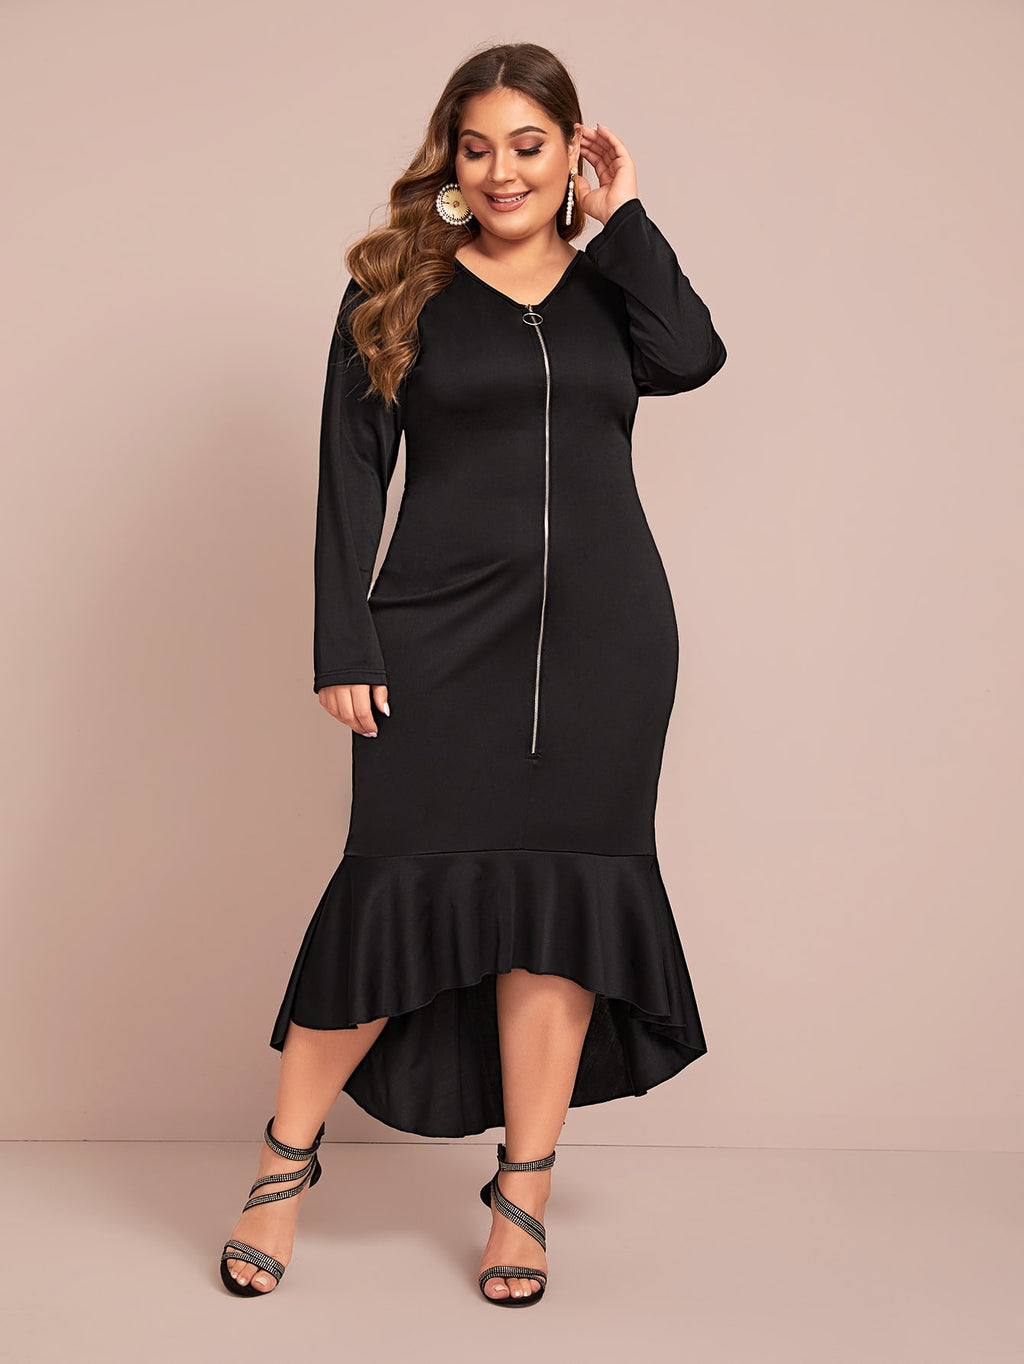 Plus Size Glam Zip Up Mermaid Cocktail Dress